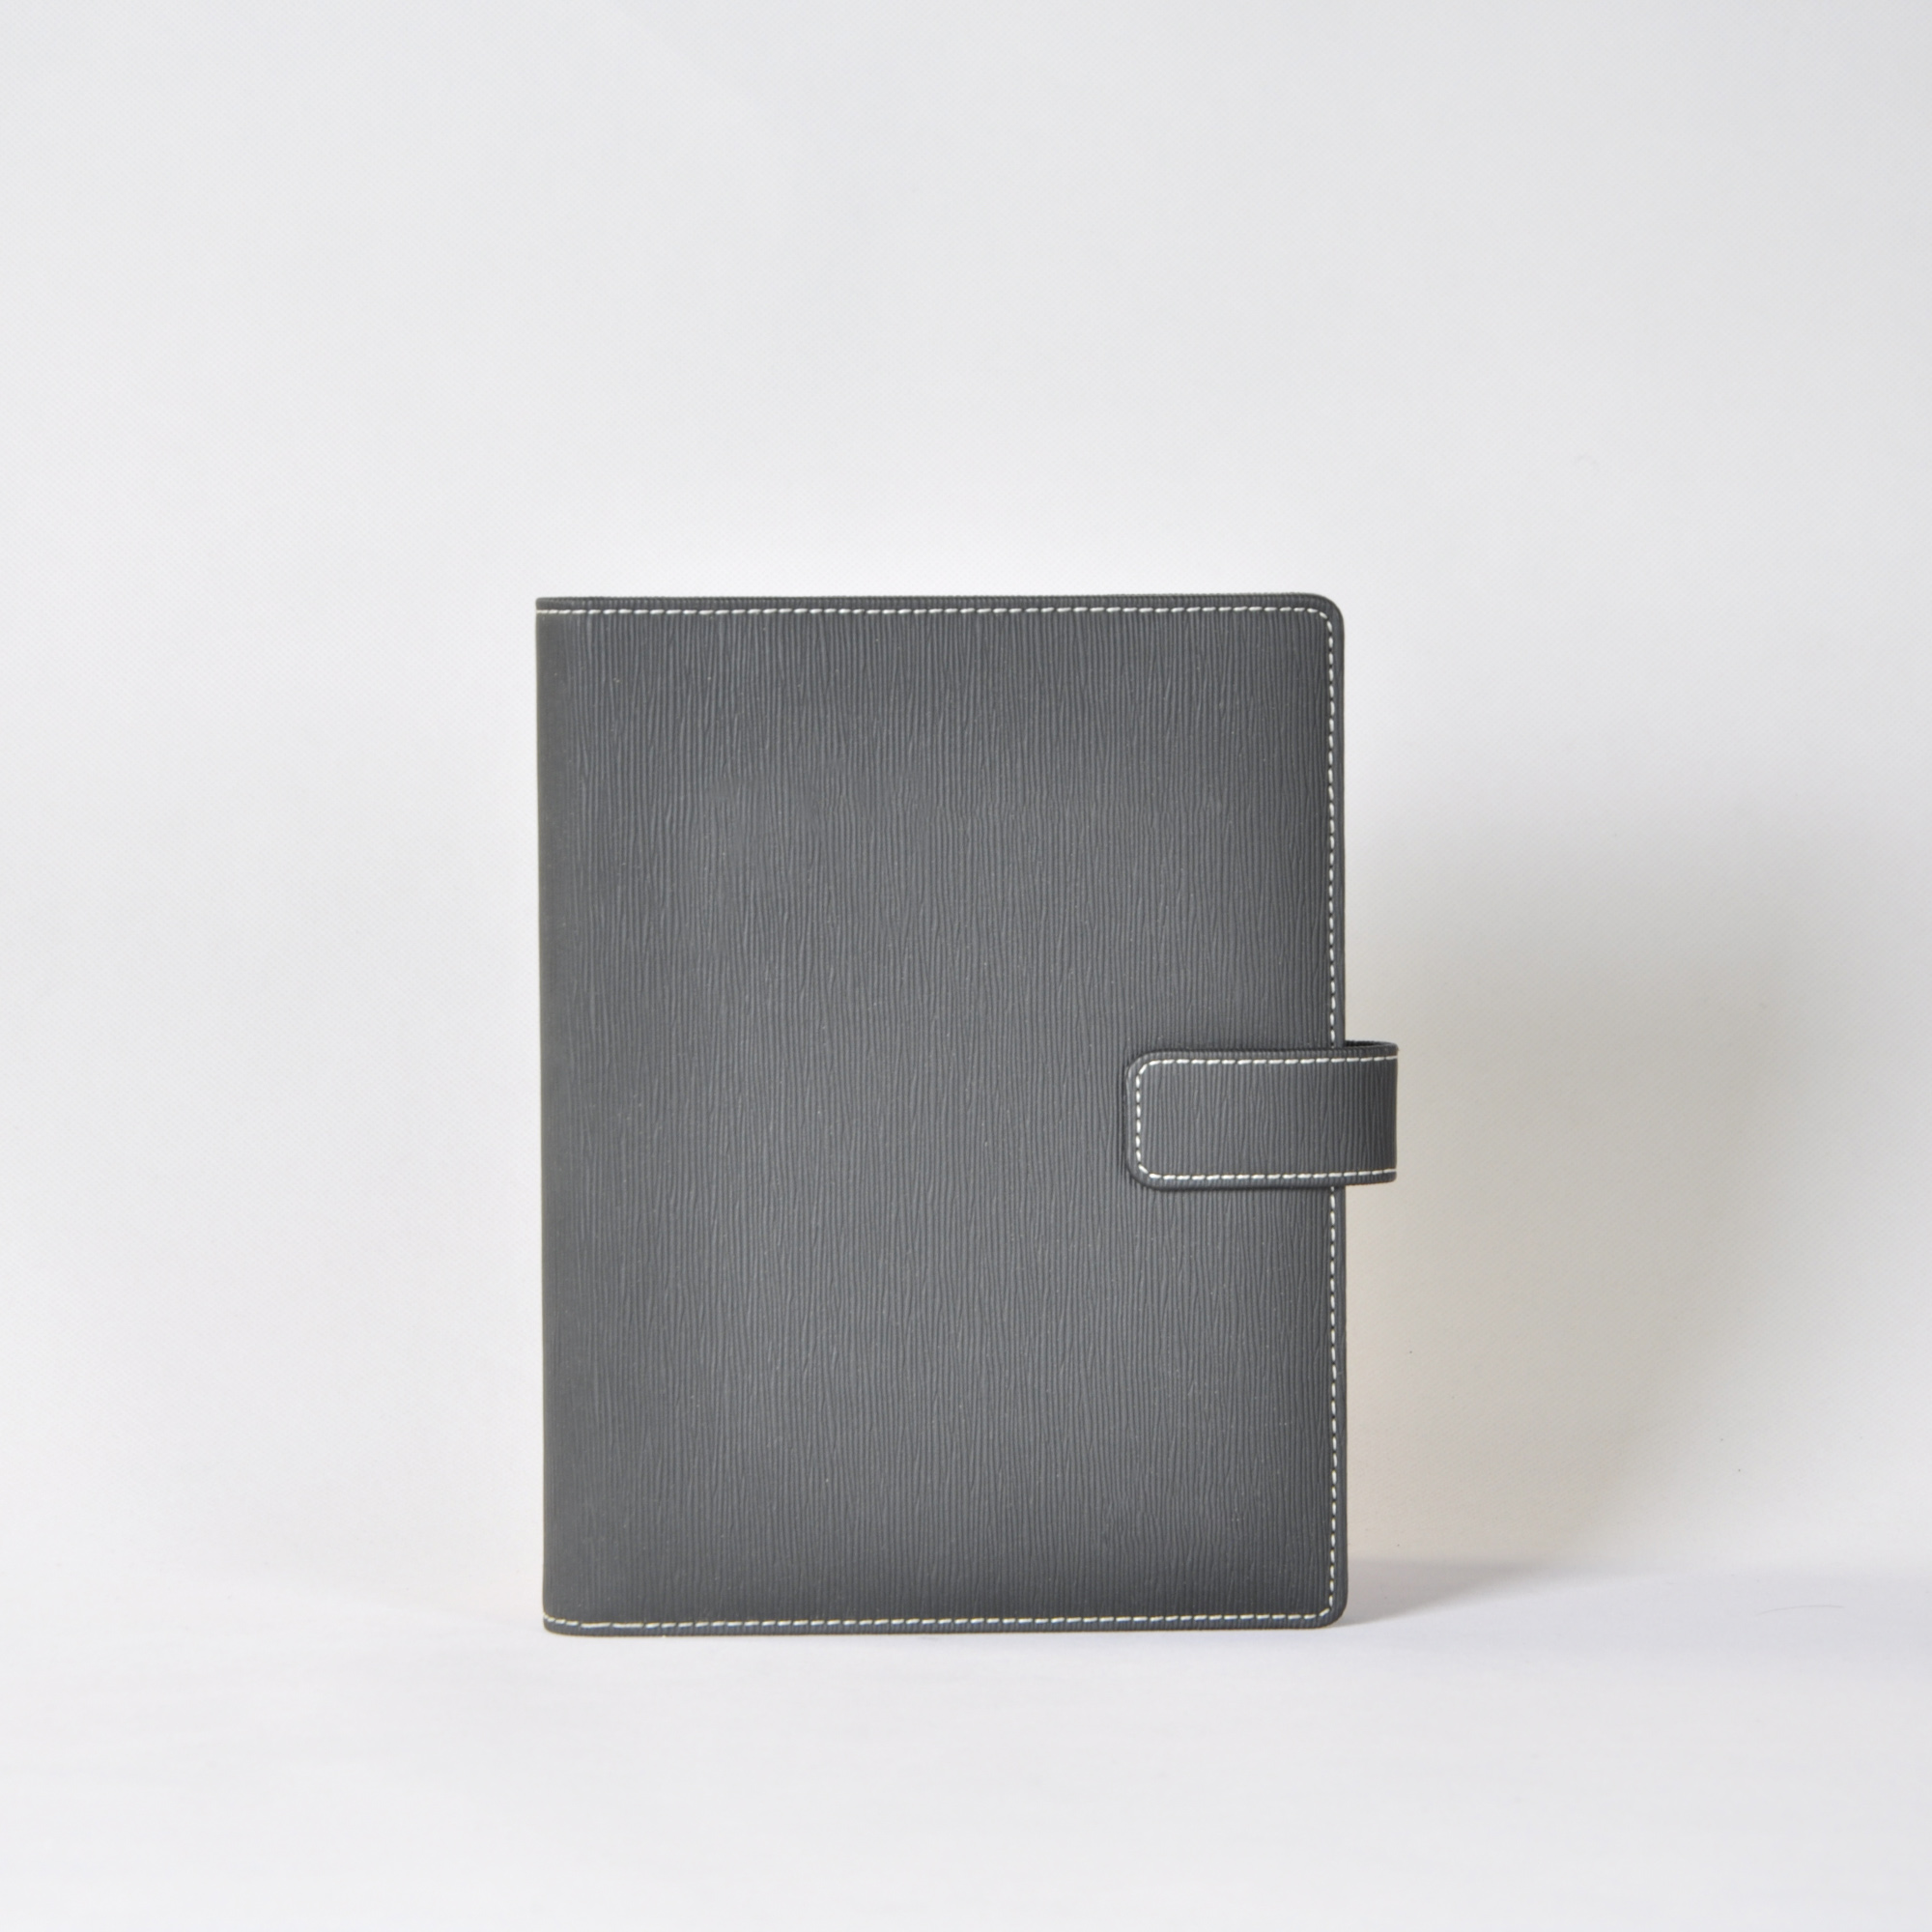 black pu leather luxury journals with card slot a5 journal with clasp and binder